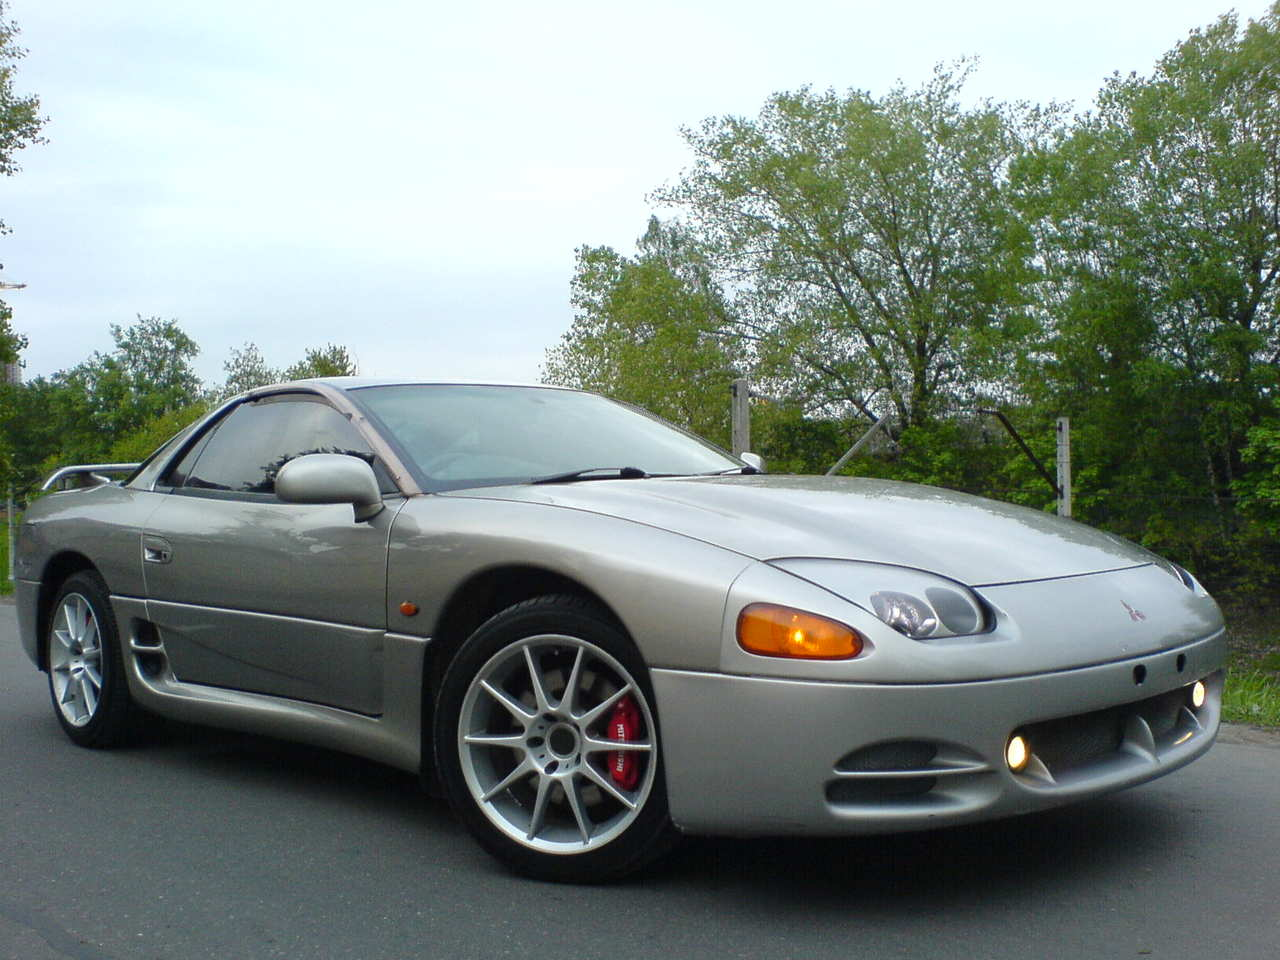 1998 Mitsubishi GTO For Sale, 3000cc., Gasoline, Automatic For Sale